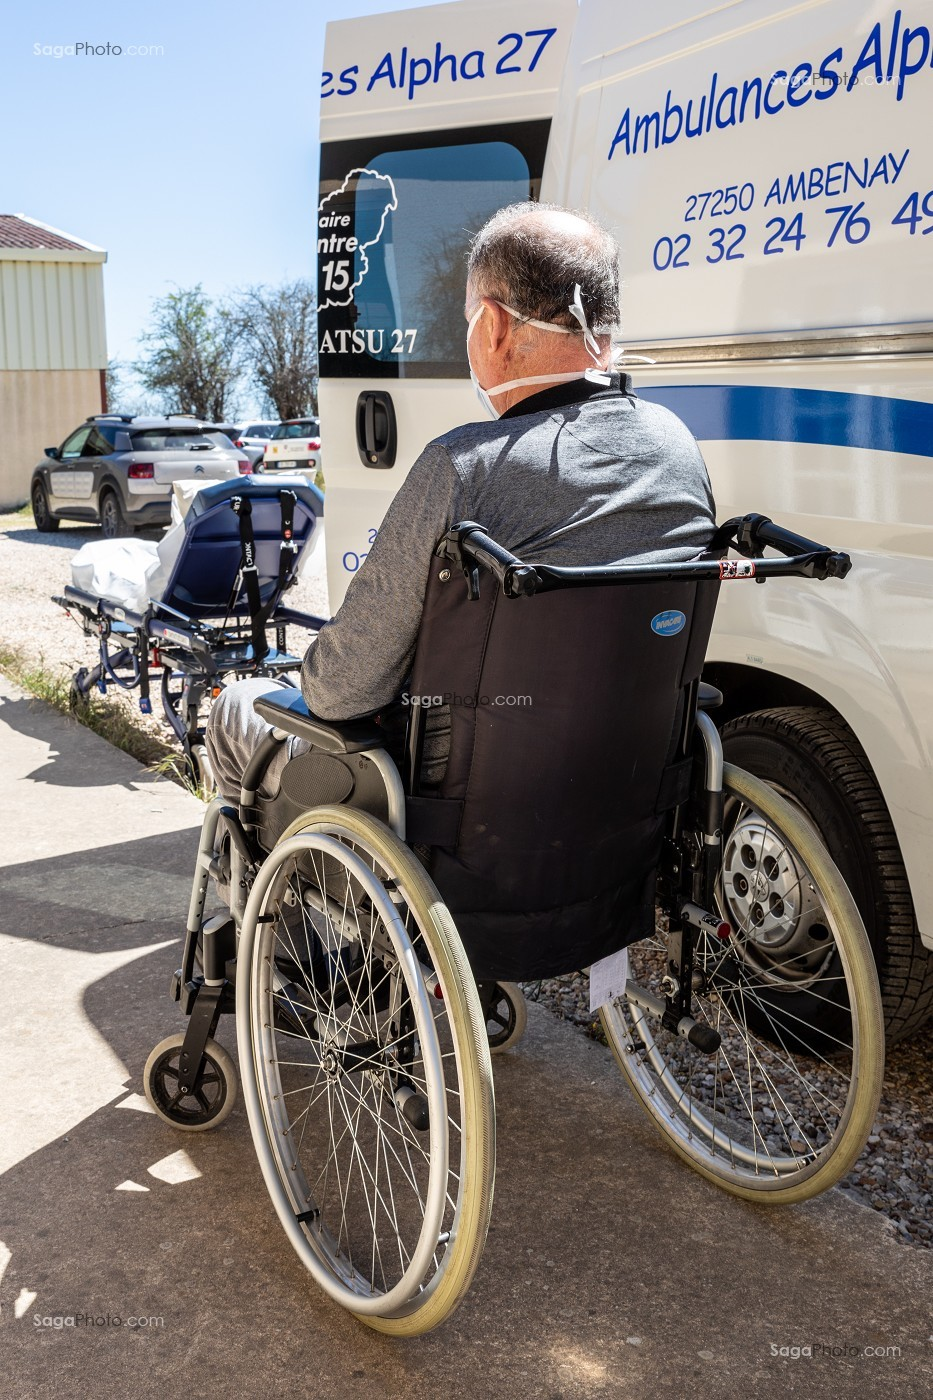 AMBULANCE, ALPHA27, INDIVIDU EN FAUTEUIL ROULANT, AMBENAY, EURE, NORMANDIE, FRANCE, EUROPE